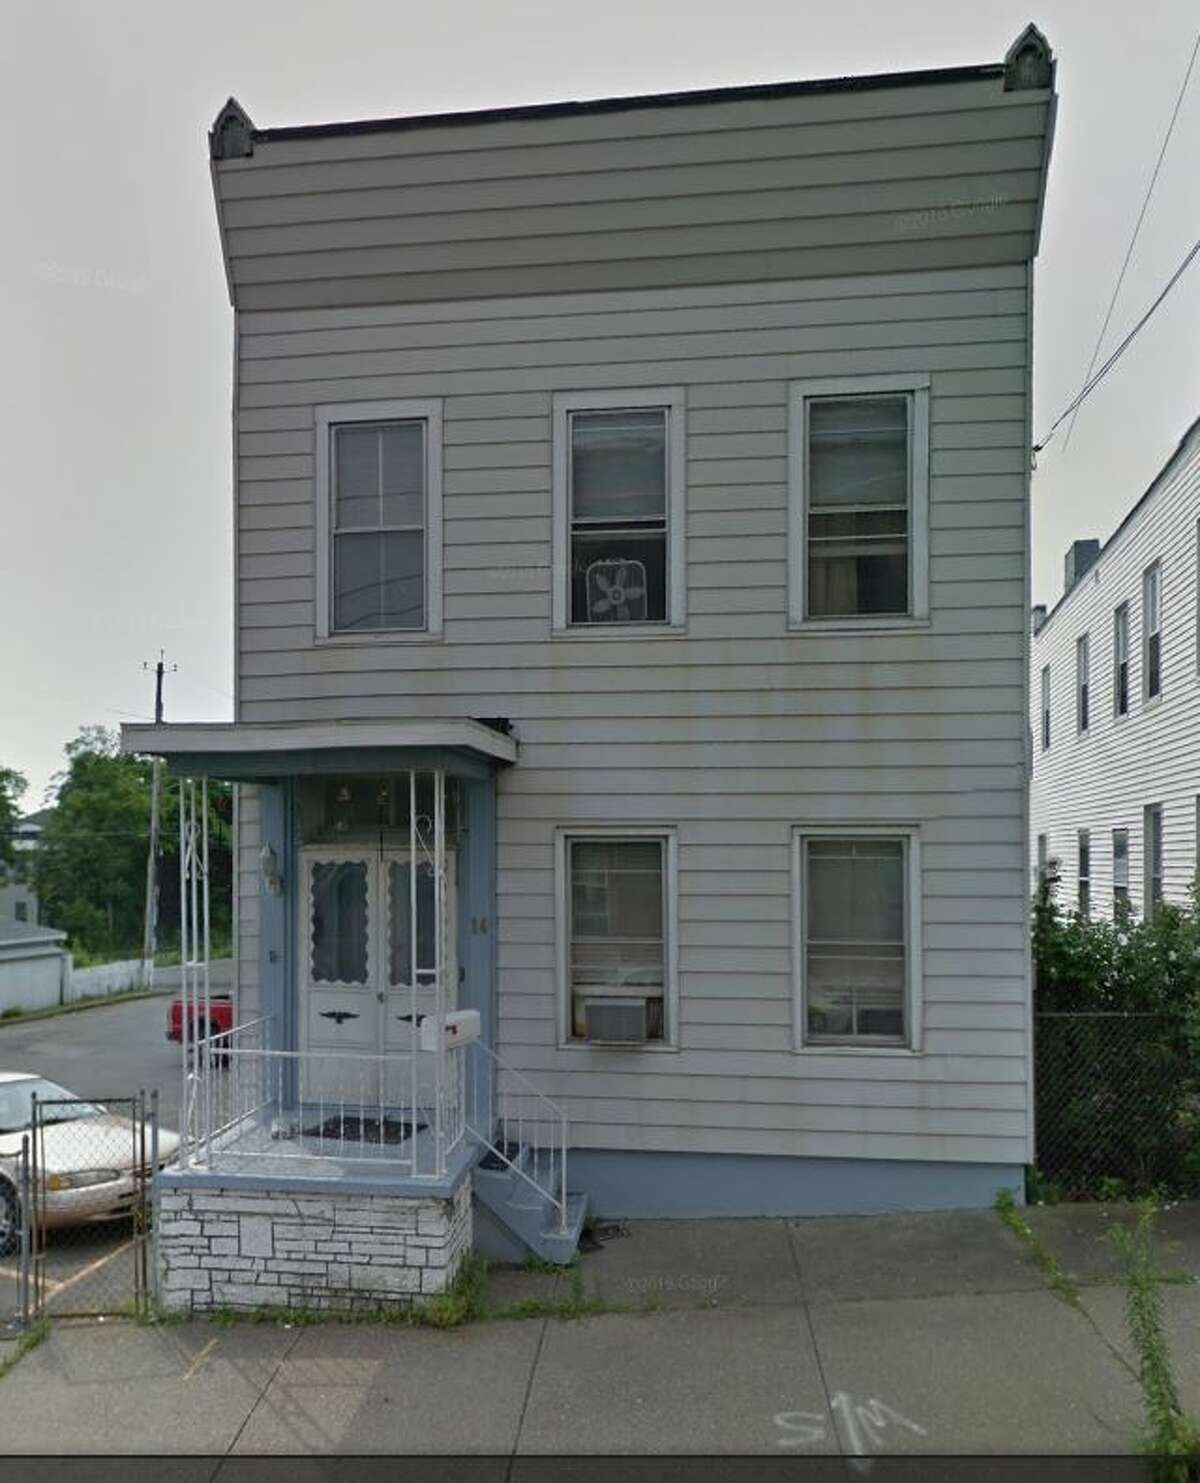 14 Columbia St., Cohoes, $20,000 (Google Maps)